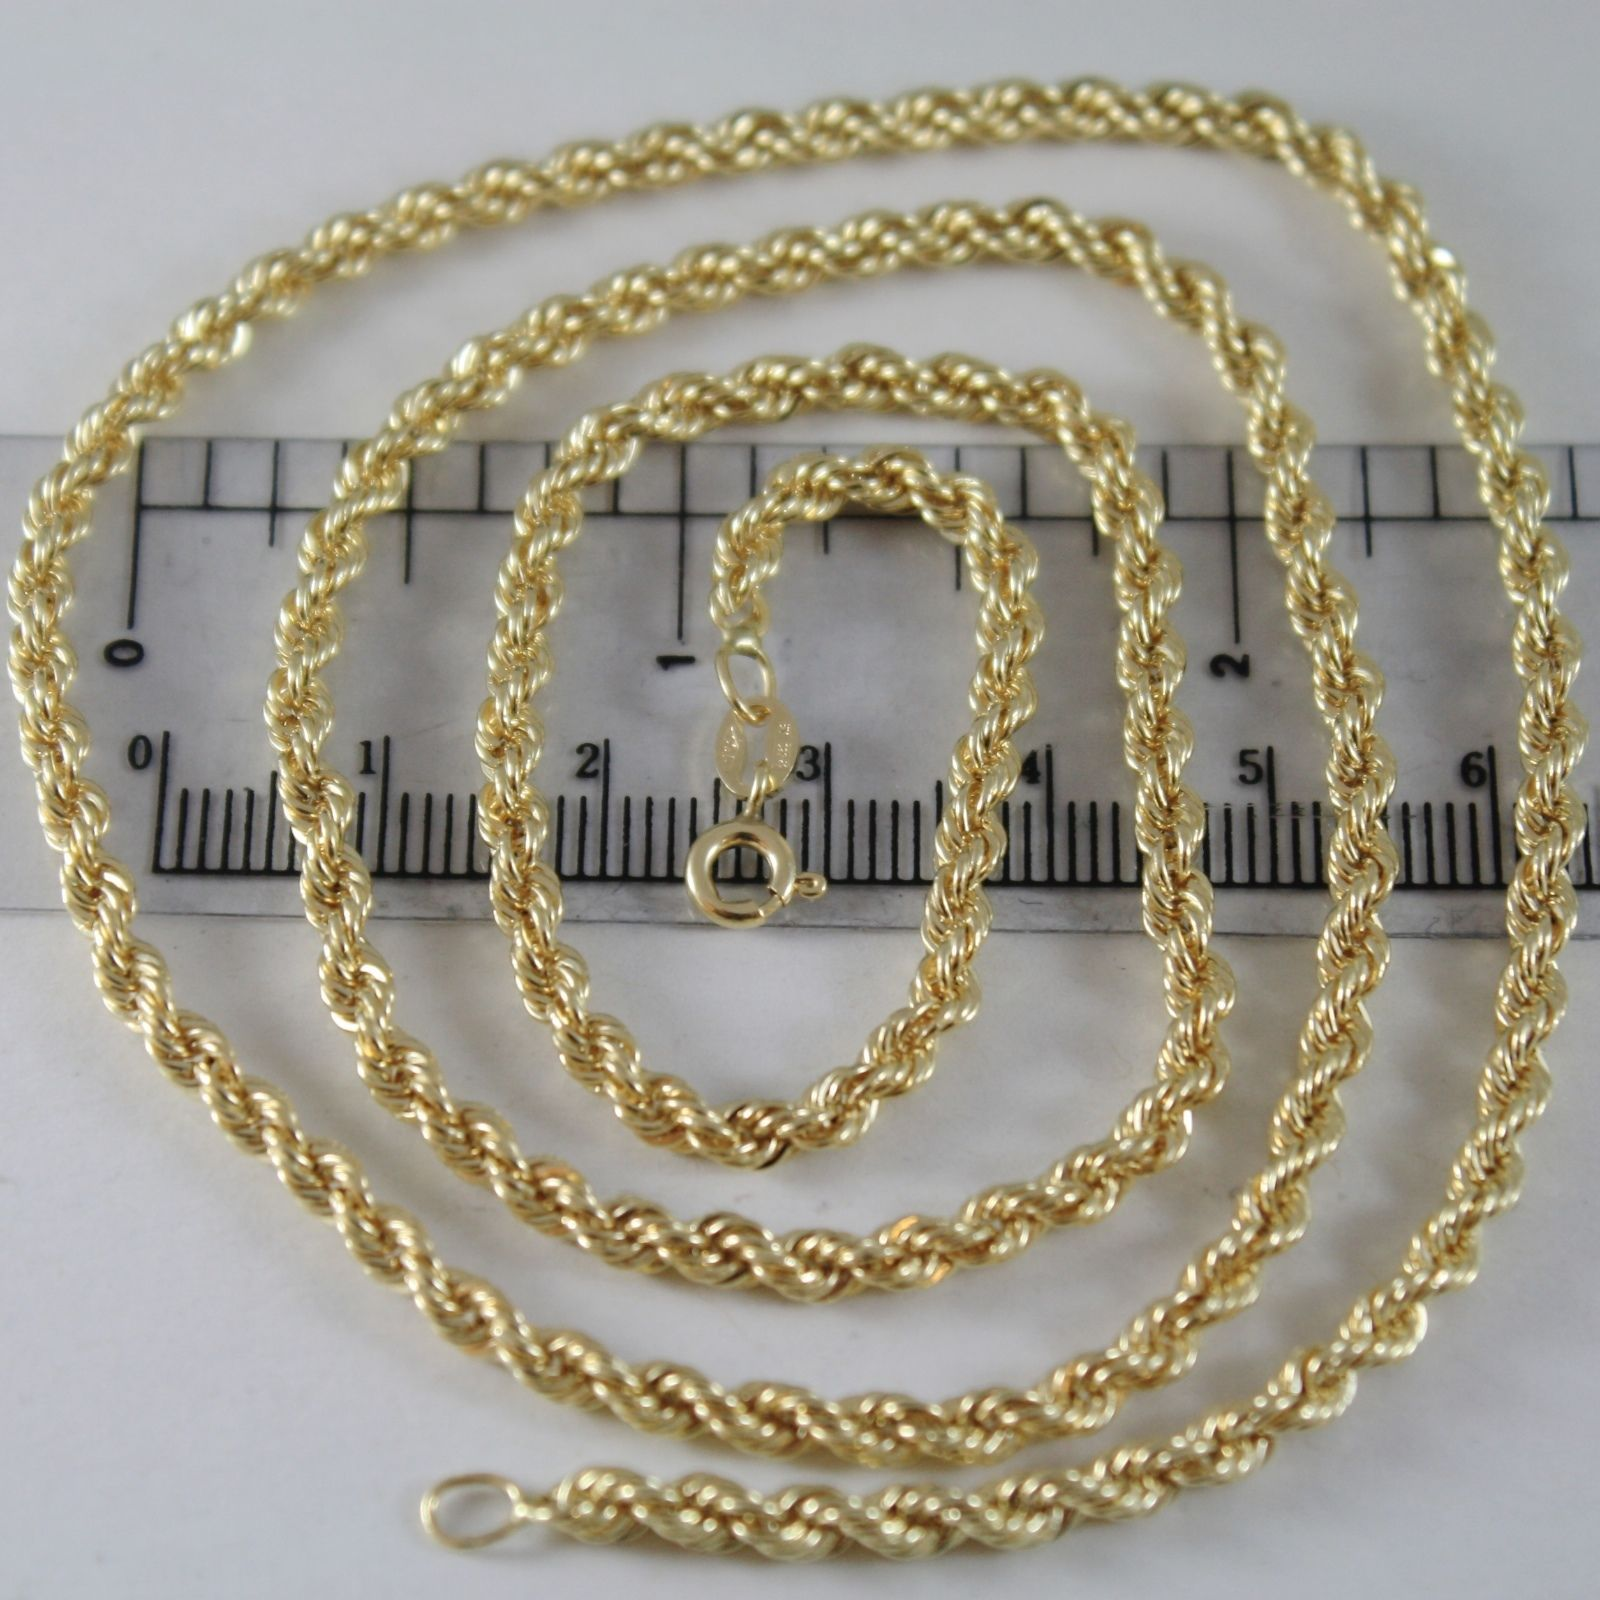 18K YELLOW GOLD CHAIN NECKLACE 3.5 MM BRAID BIG ROPE LINK 17.70 MADE IN ITALY